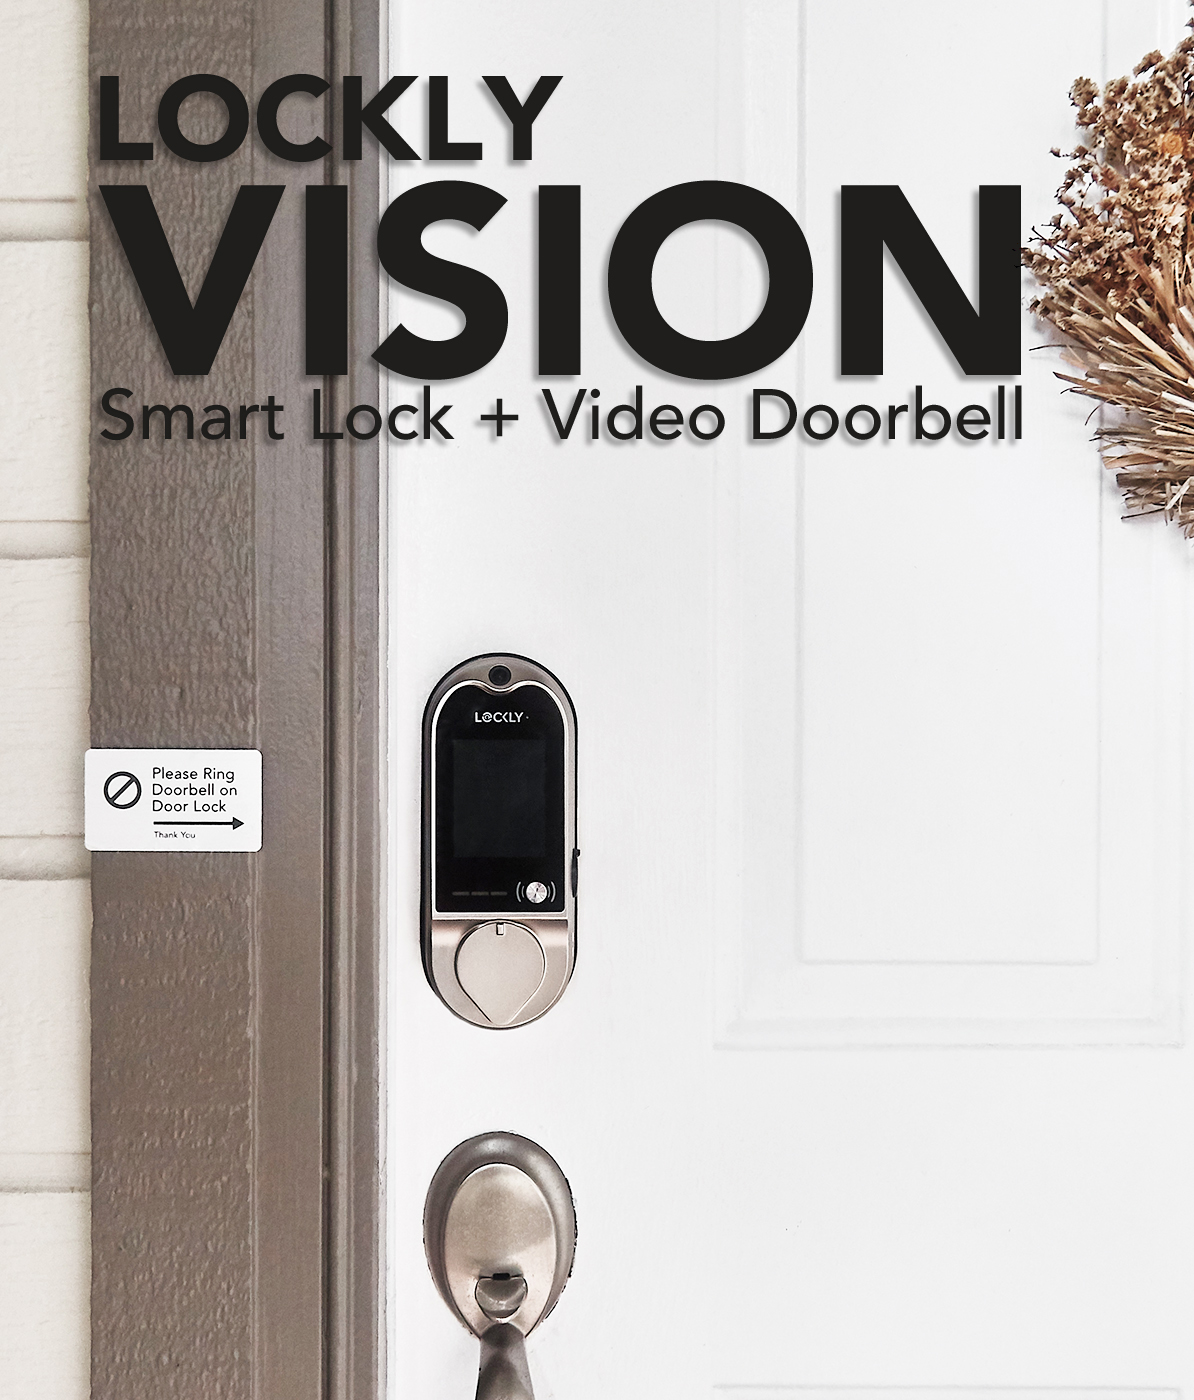 LOCKLY Vision Smart Lock Video Doorbell review – Knock knock, I know who's there